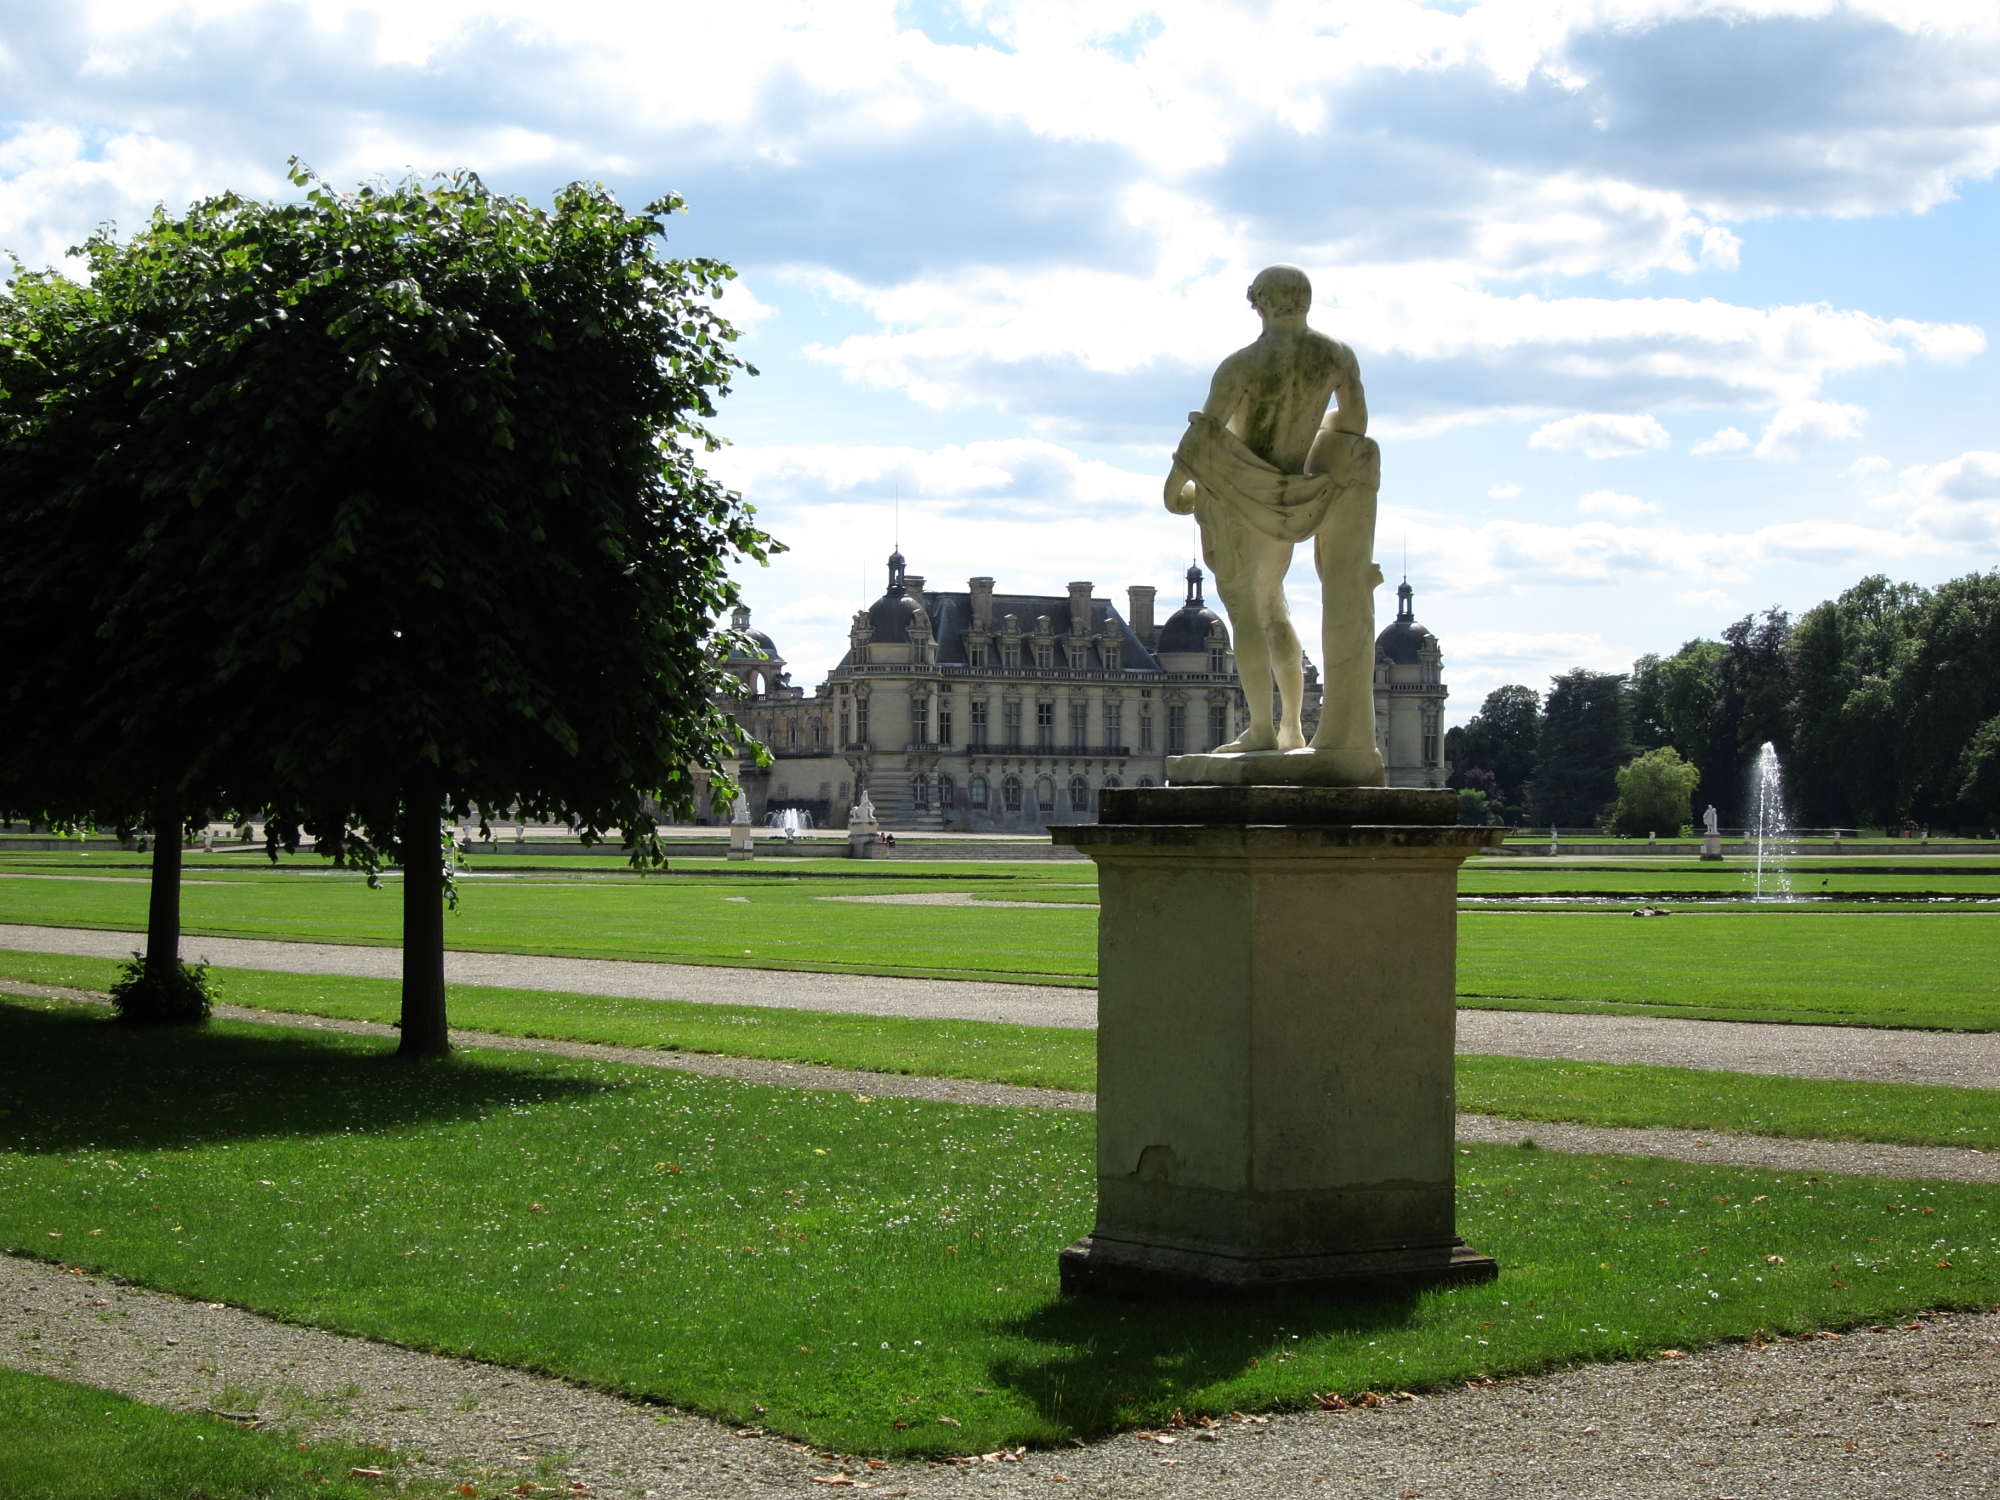 View of the Château de Chantilly from the French garden.